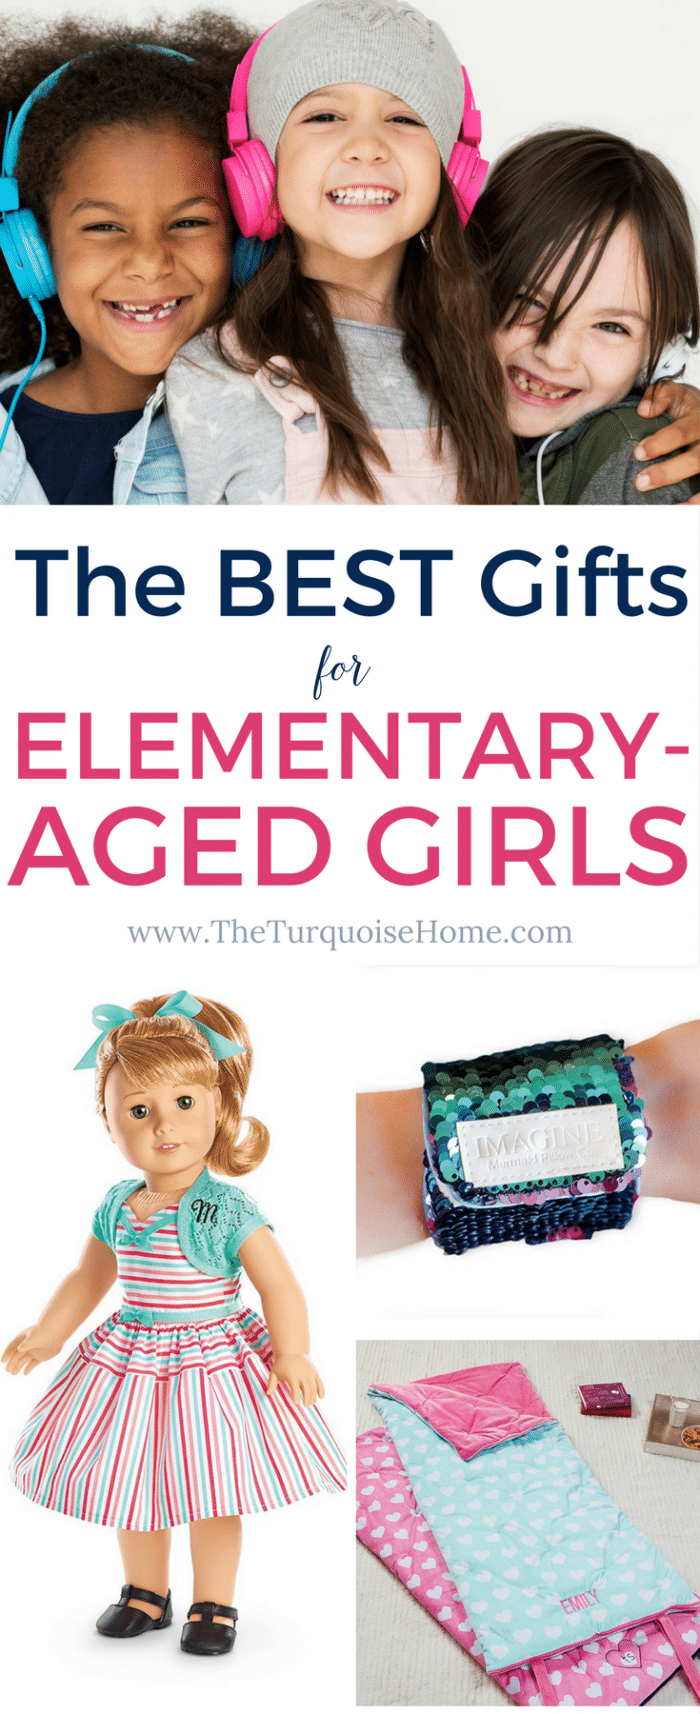 The BEST gifts for Elementary-Aged Girls - love these ideas!!